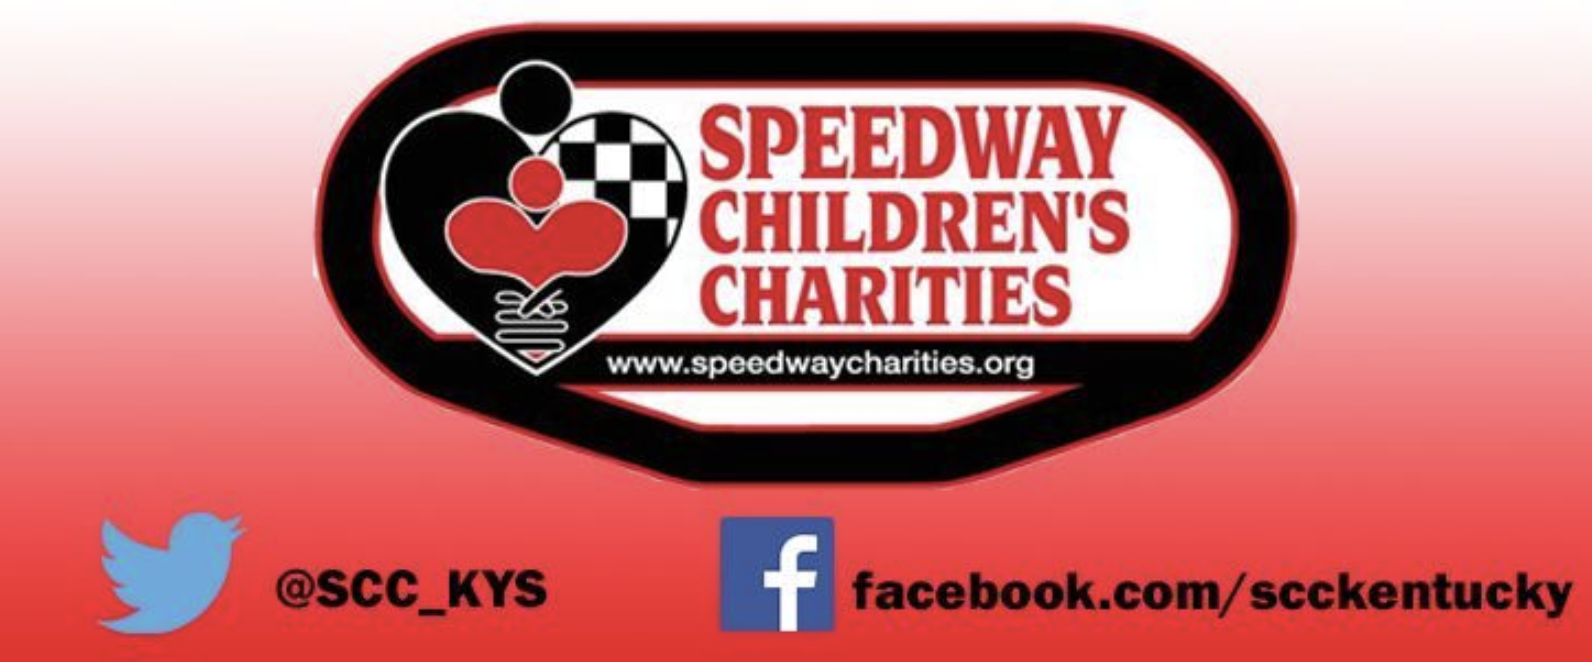 Kentucky Speedway Children's Charities